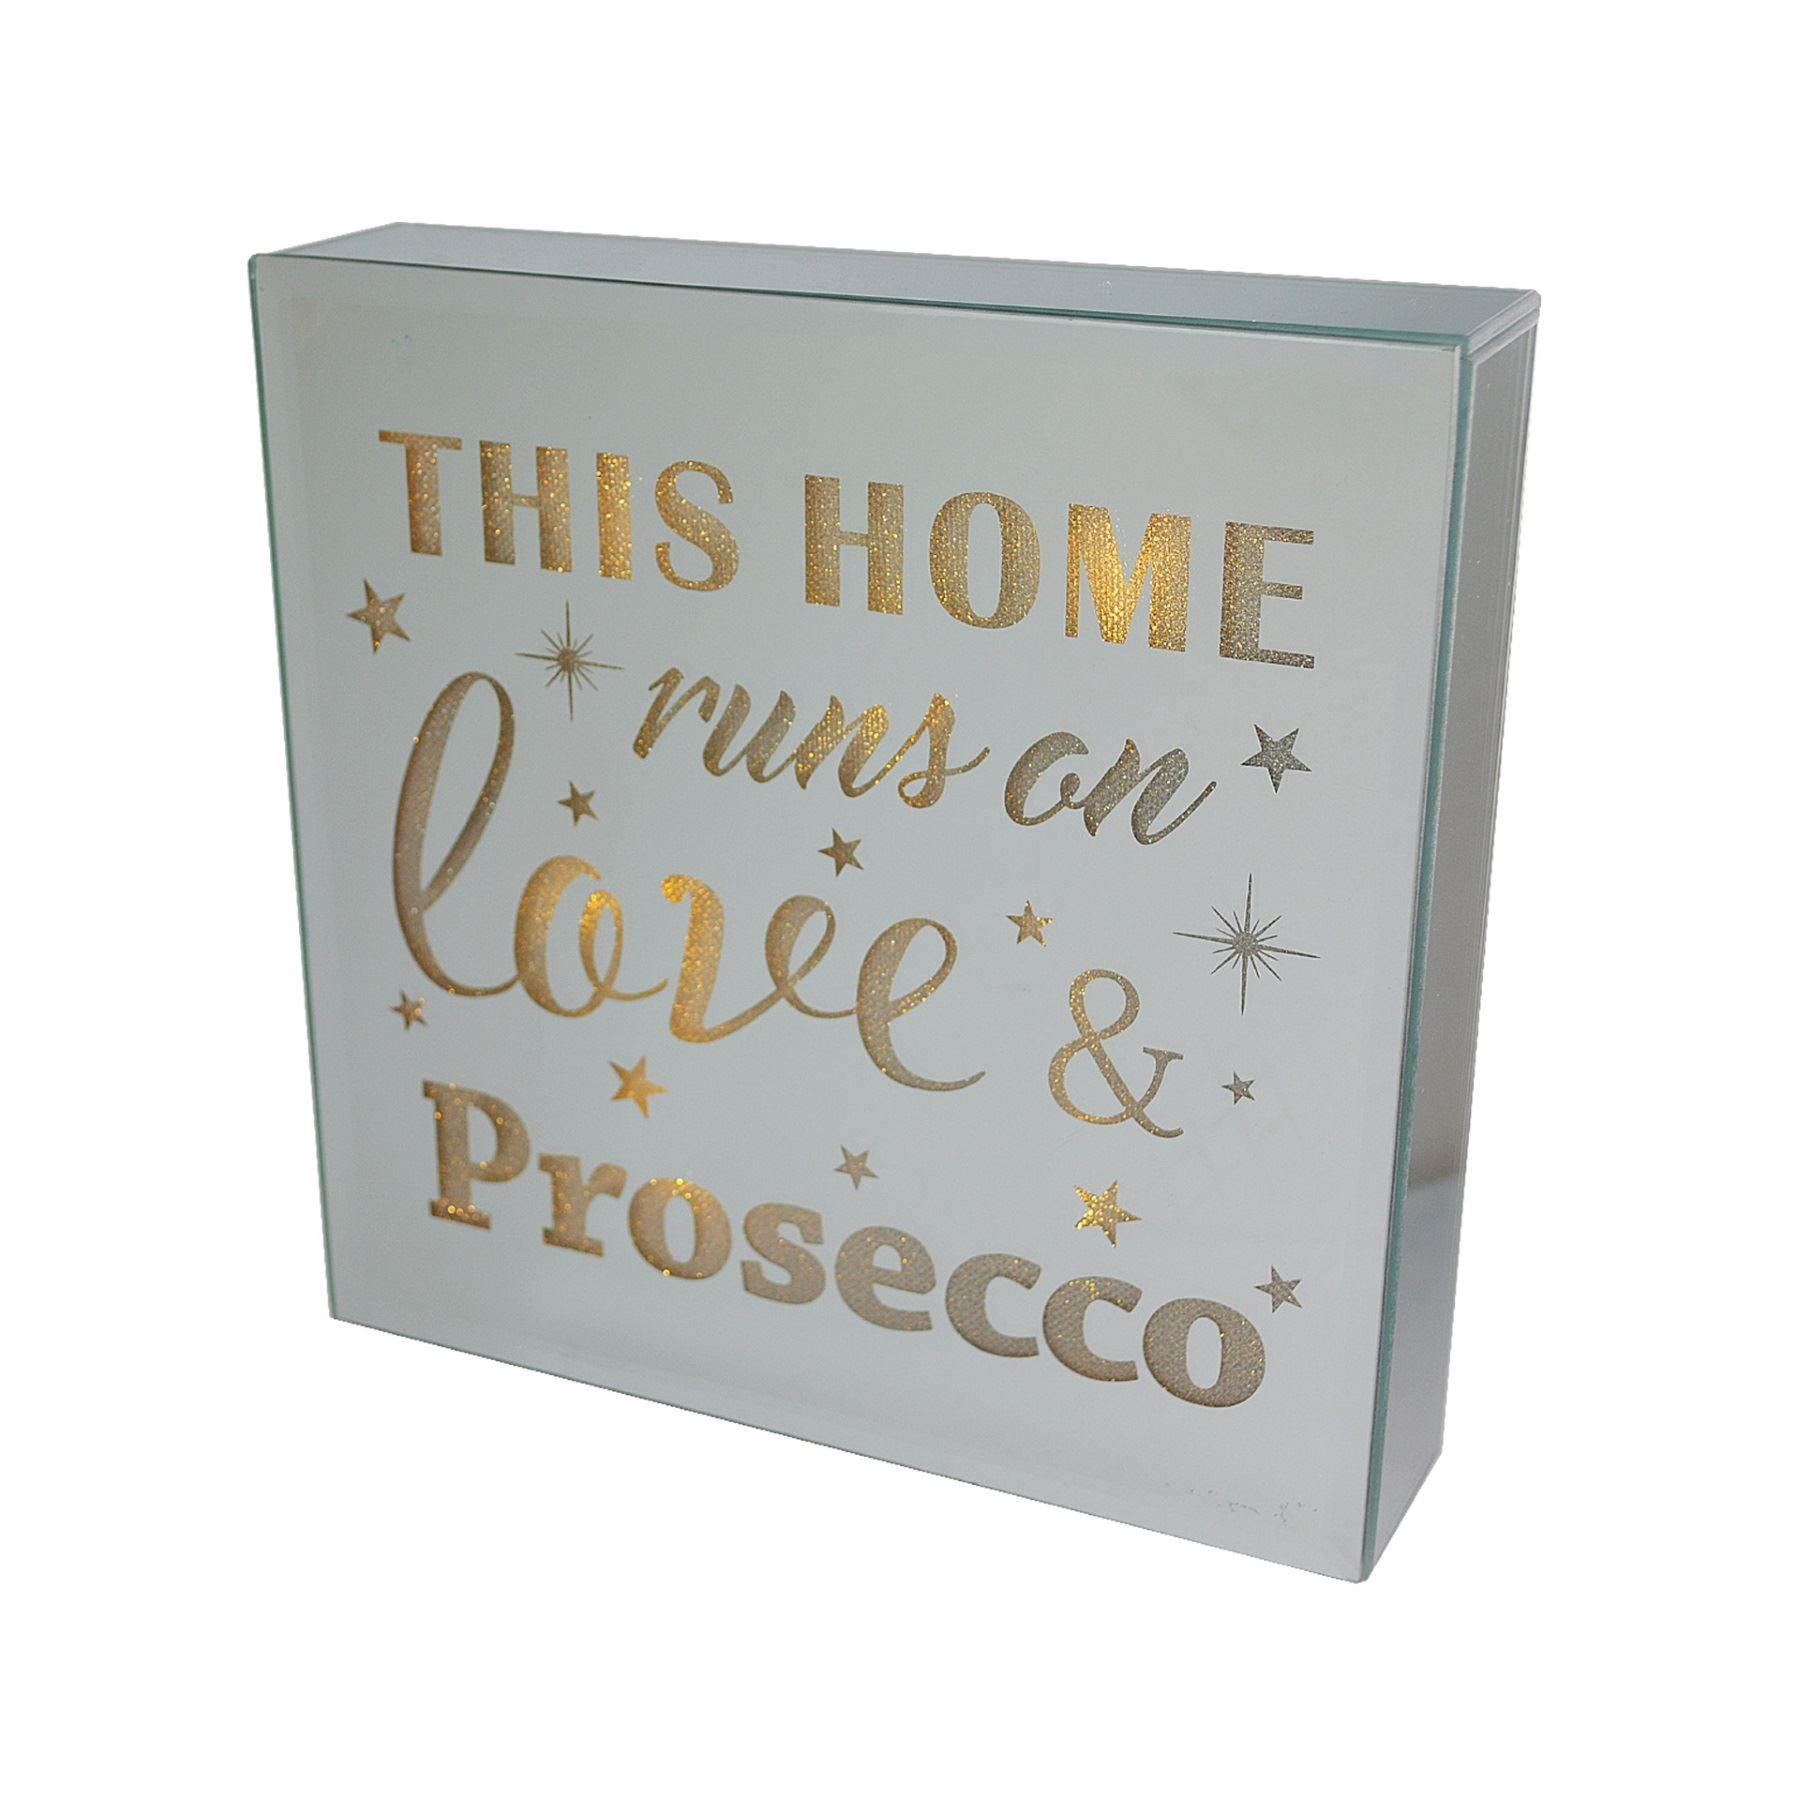 Details about Love & Prosecco Light Up Glass Mirror Block Wall Decoration  Home Decor Gift Idea